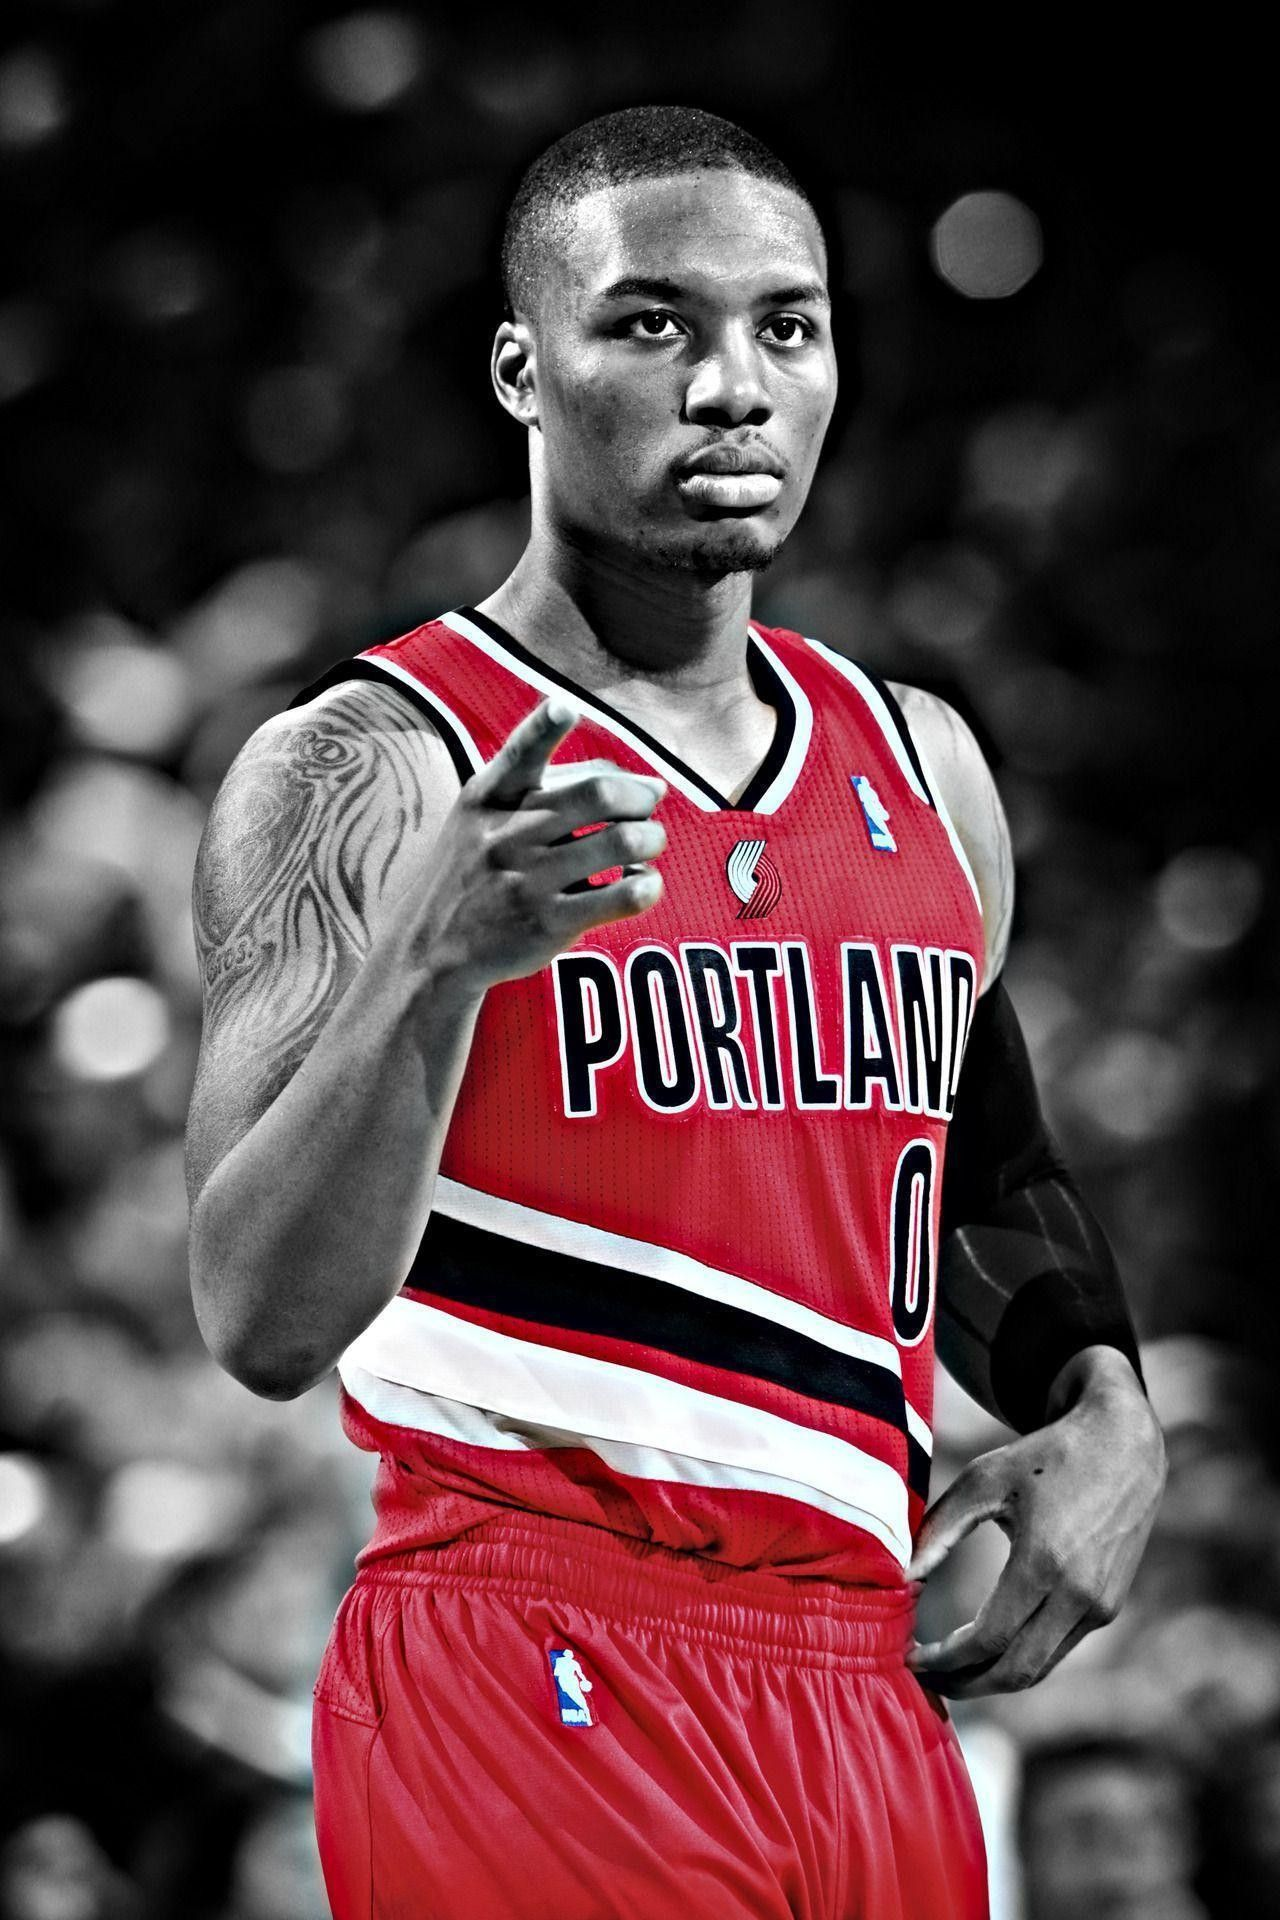 Lovely Damian Lillard Wallpaper iPhone 5 Check more at